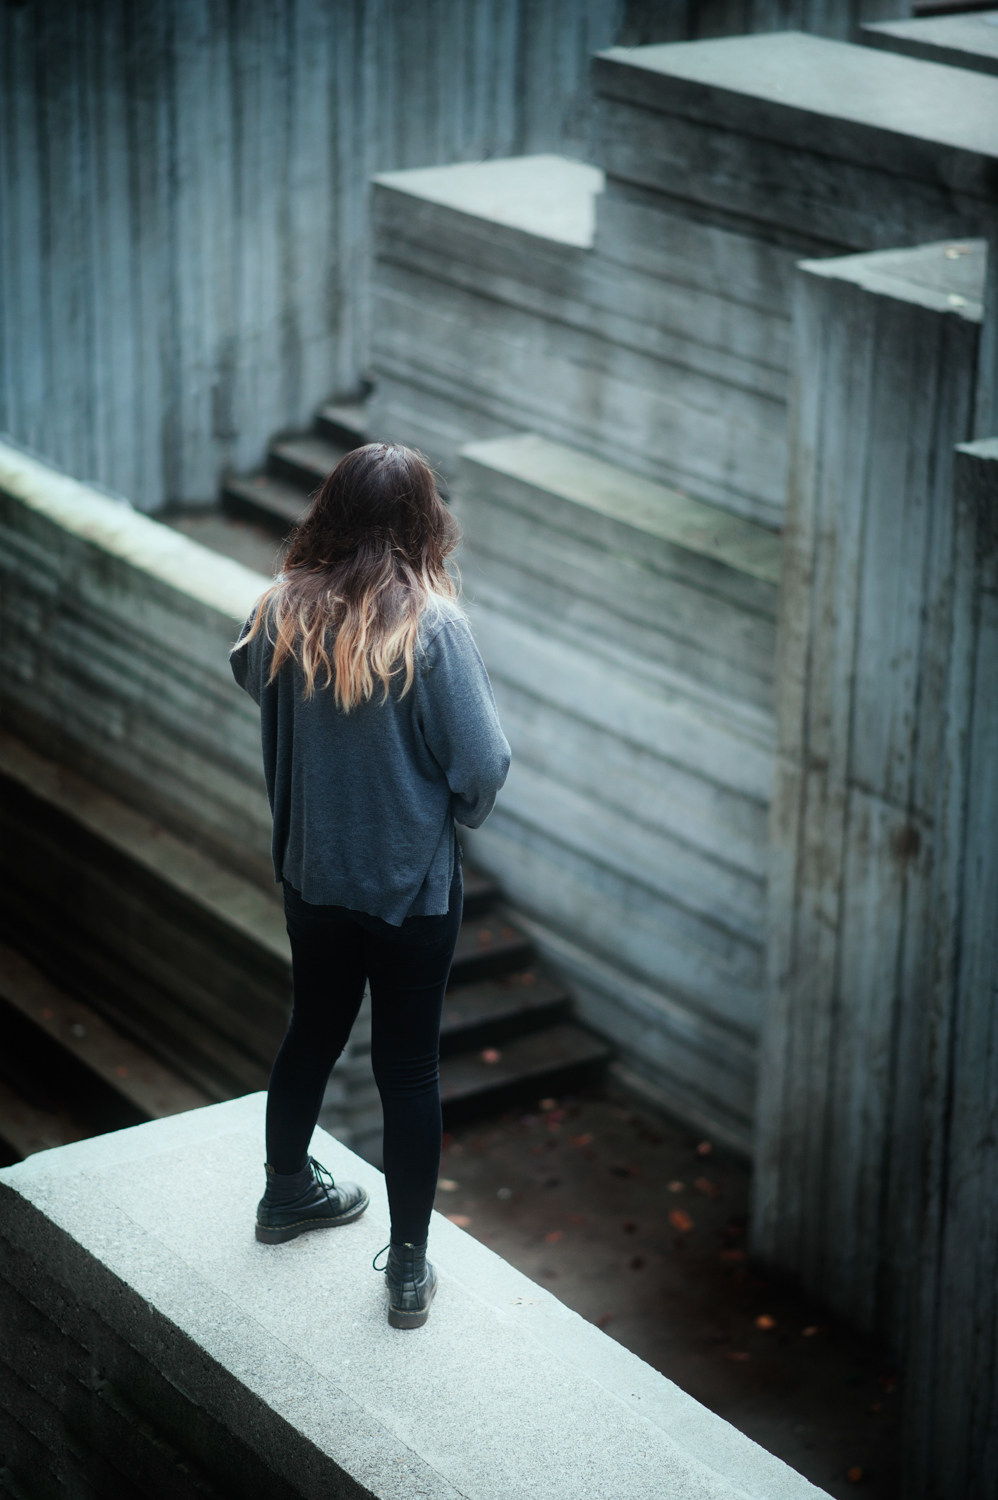 Labyrinth - Narrative Portraiture Captured at Freeway Park in Seattle